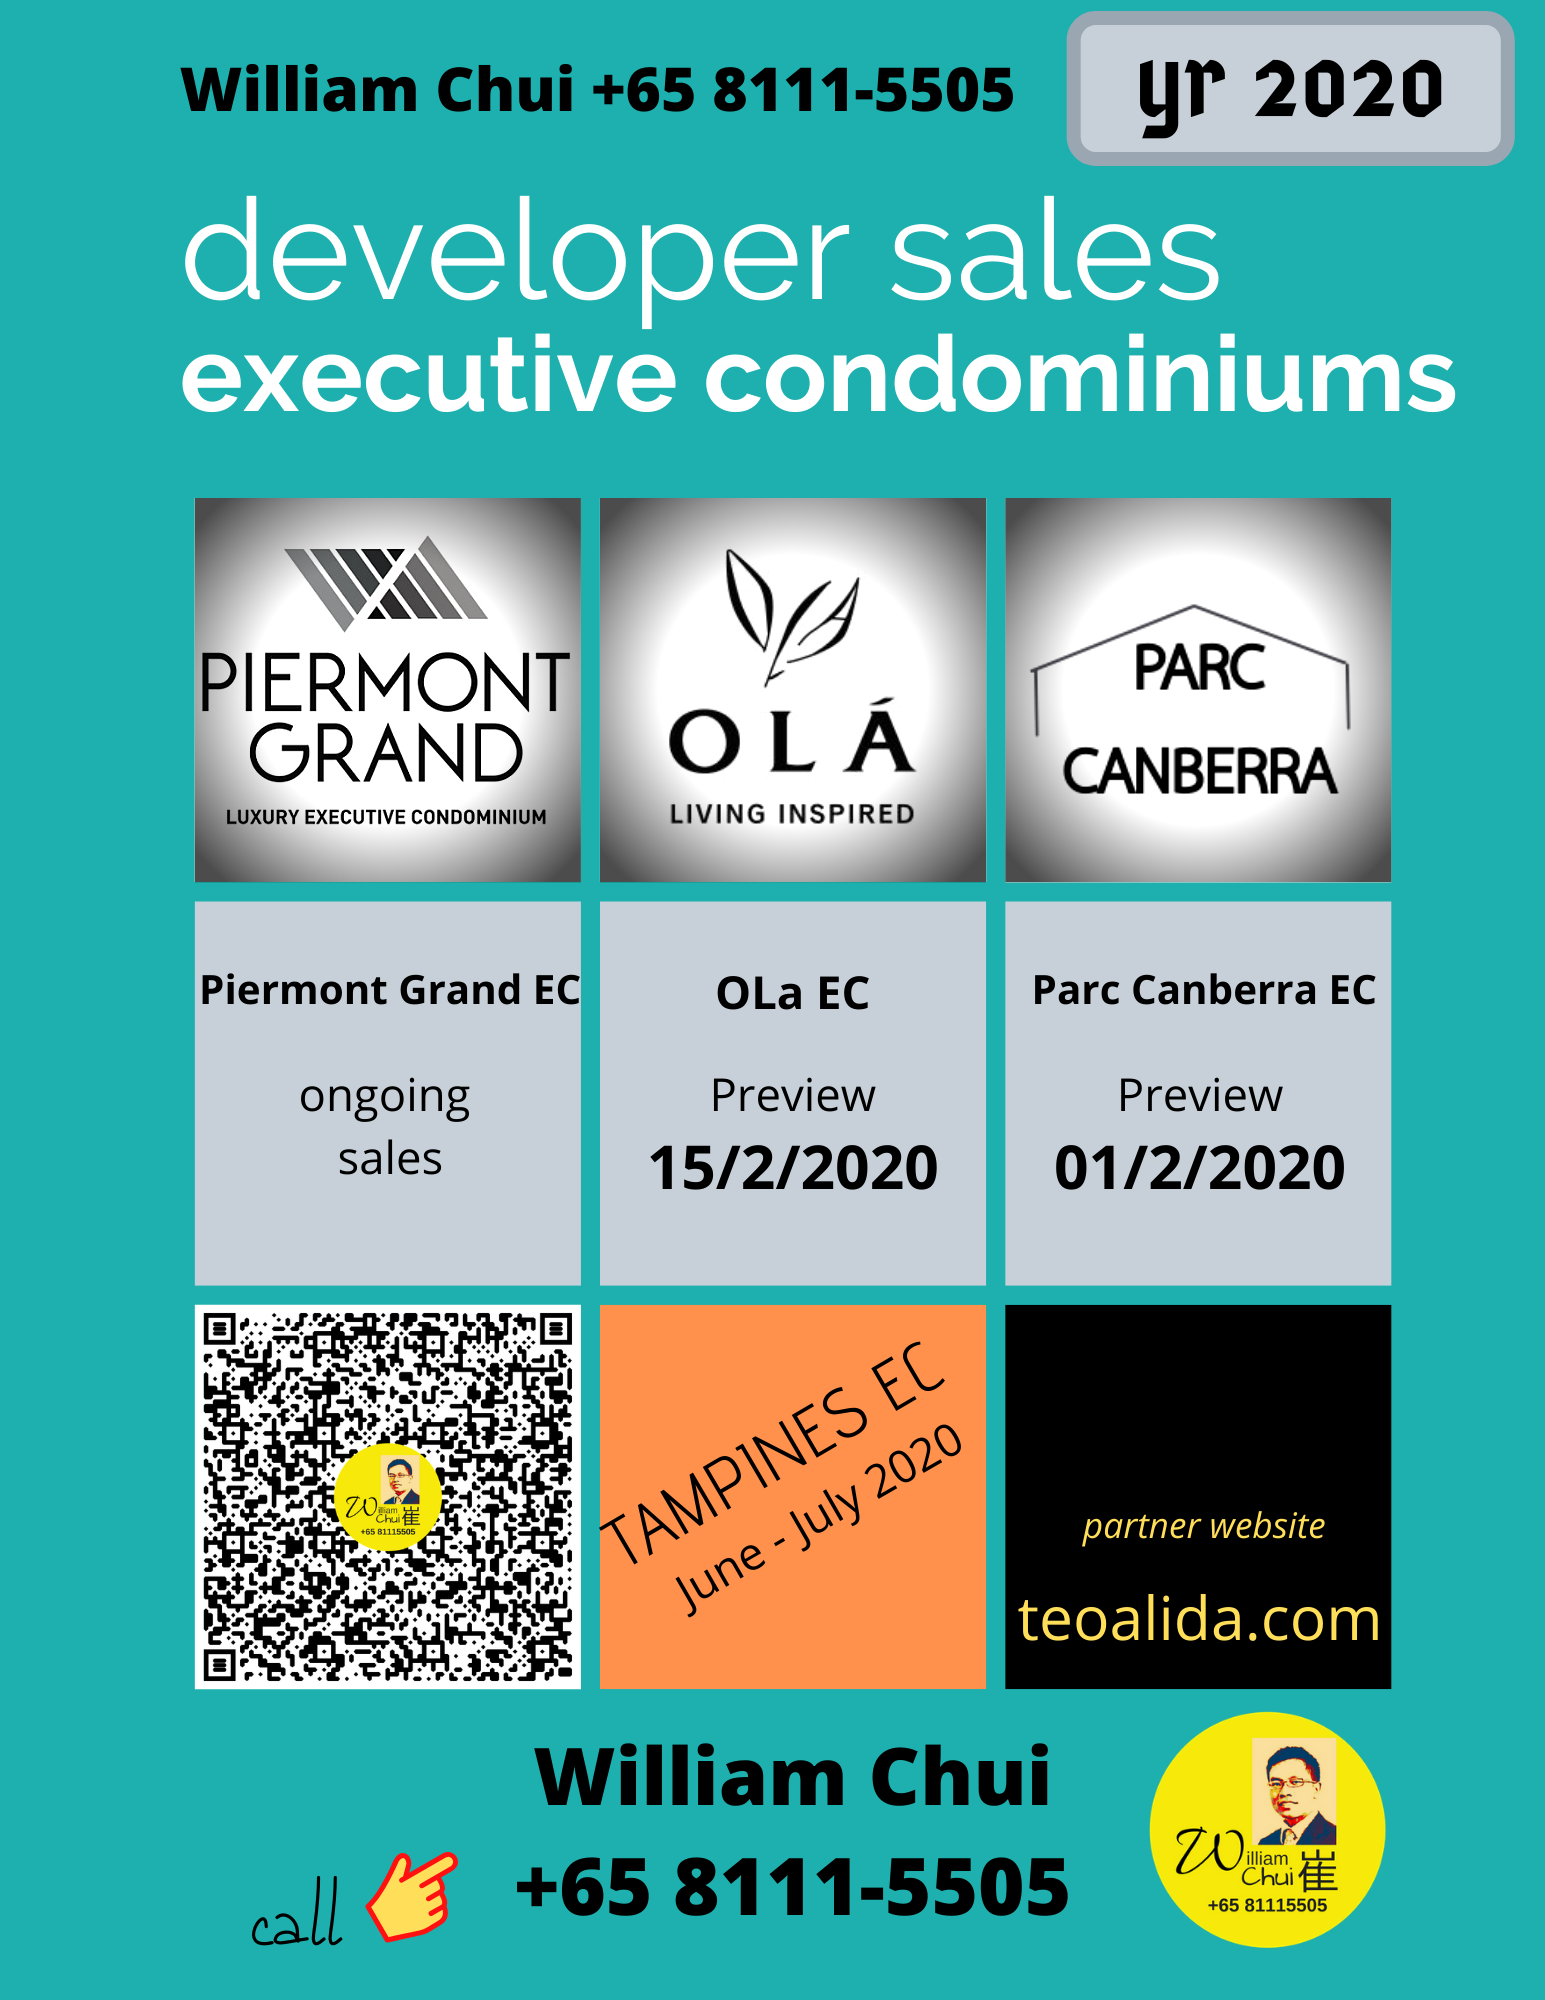 Executive Condominium developer sales